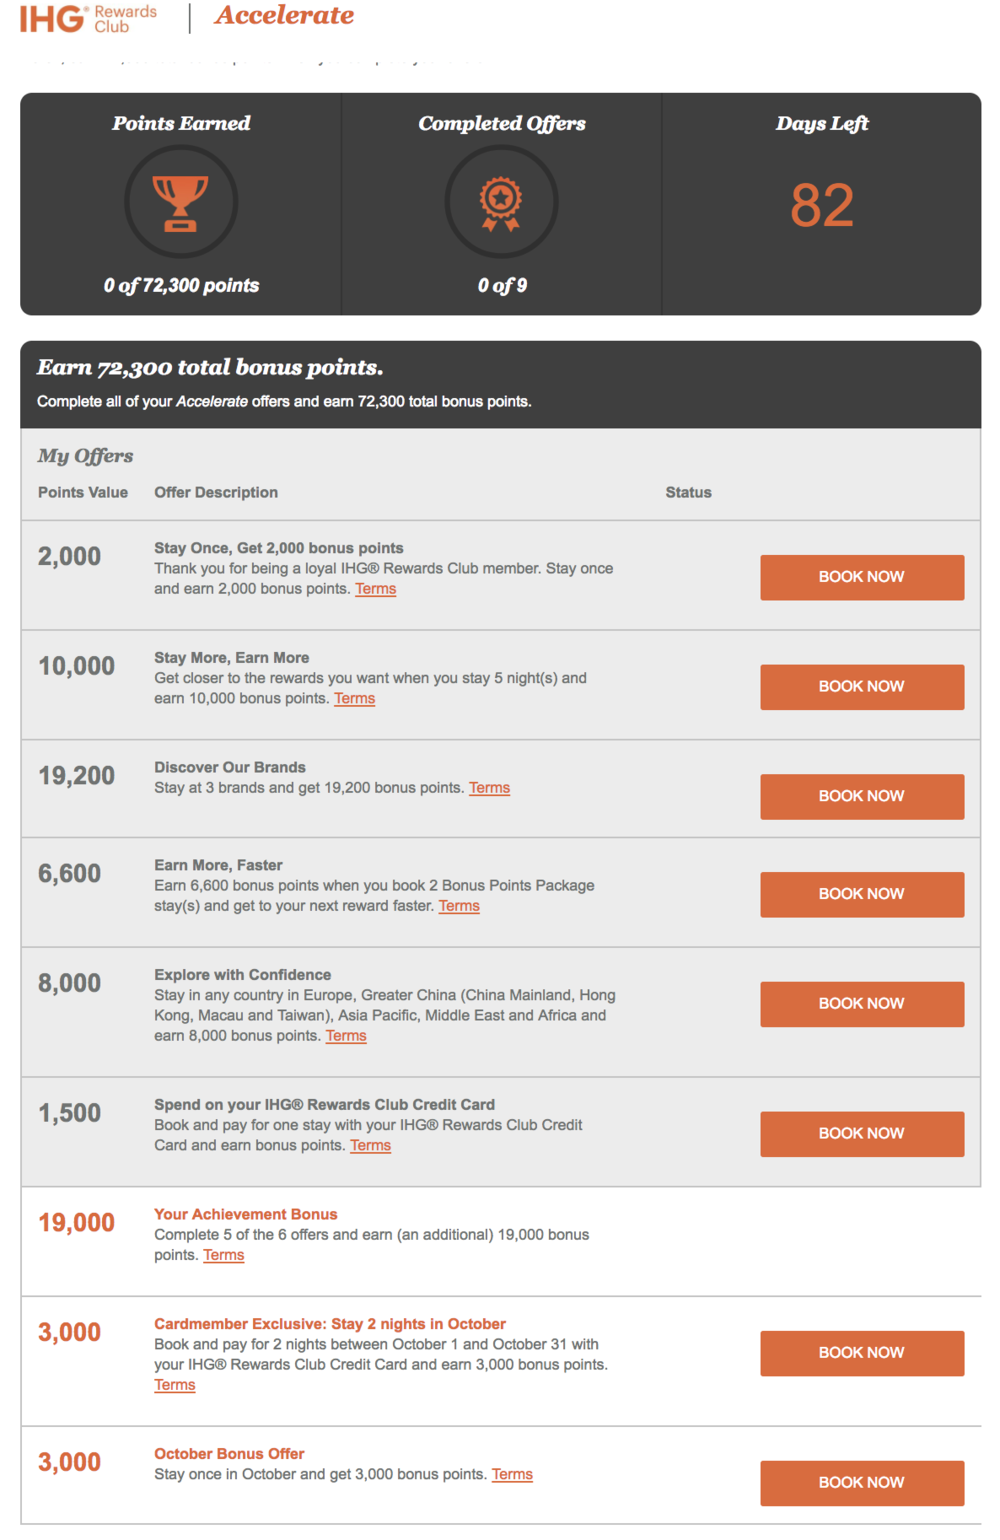 My Fall 2017 IHG Rewards Accelerate promotion  (click to enlarge)